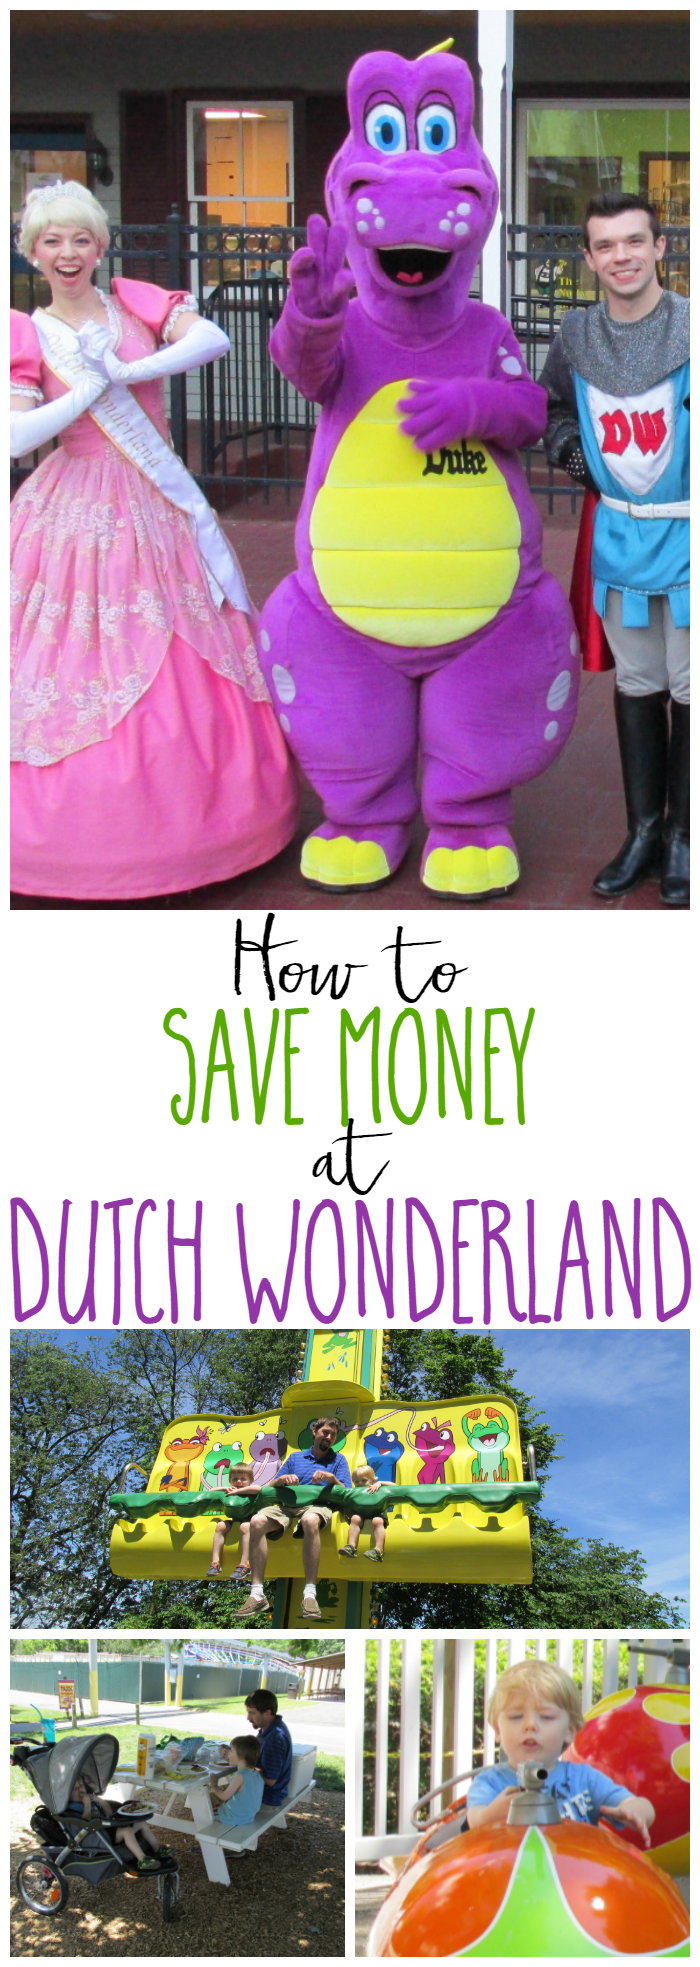 How to Save Money at Dutch Wonderland - Check out these tips on how to save money on your family fun adventure to Dutch Wonderland.